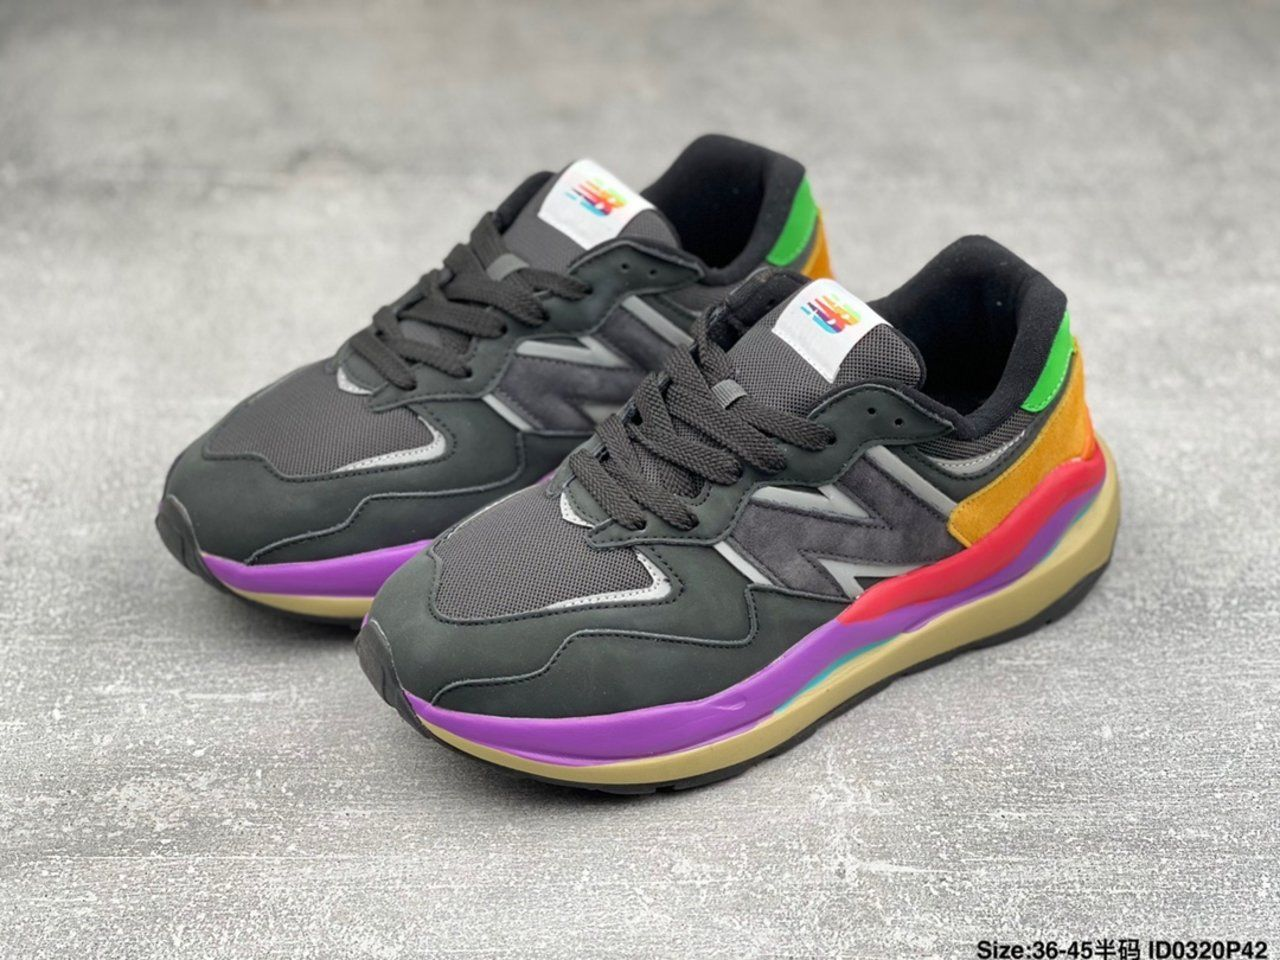 New Balance jogging shoes M5740LB overall